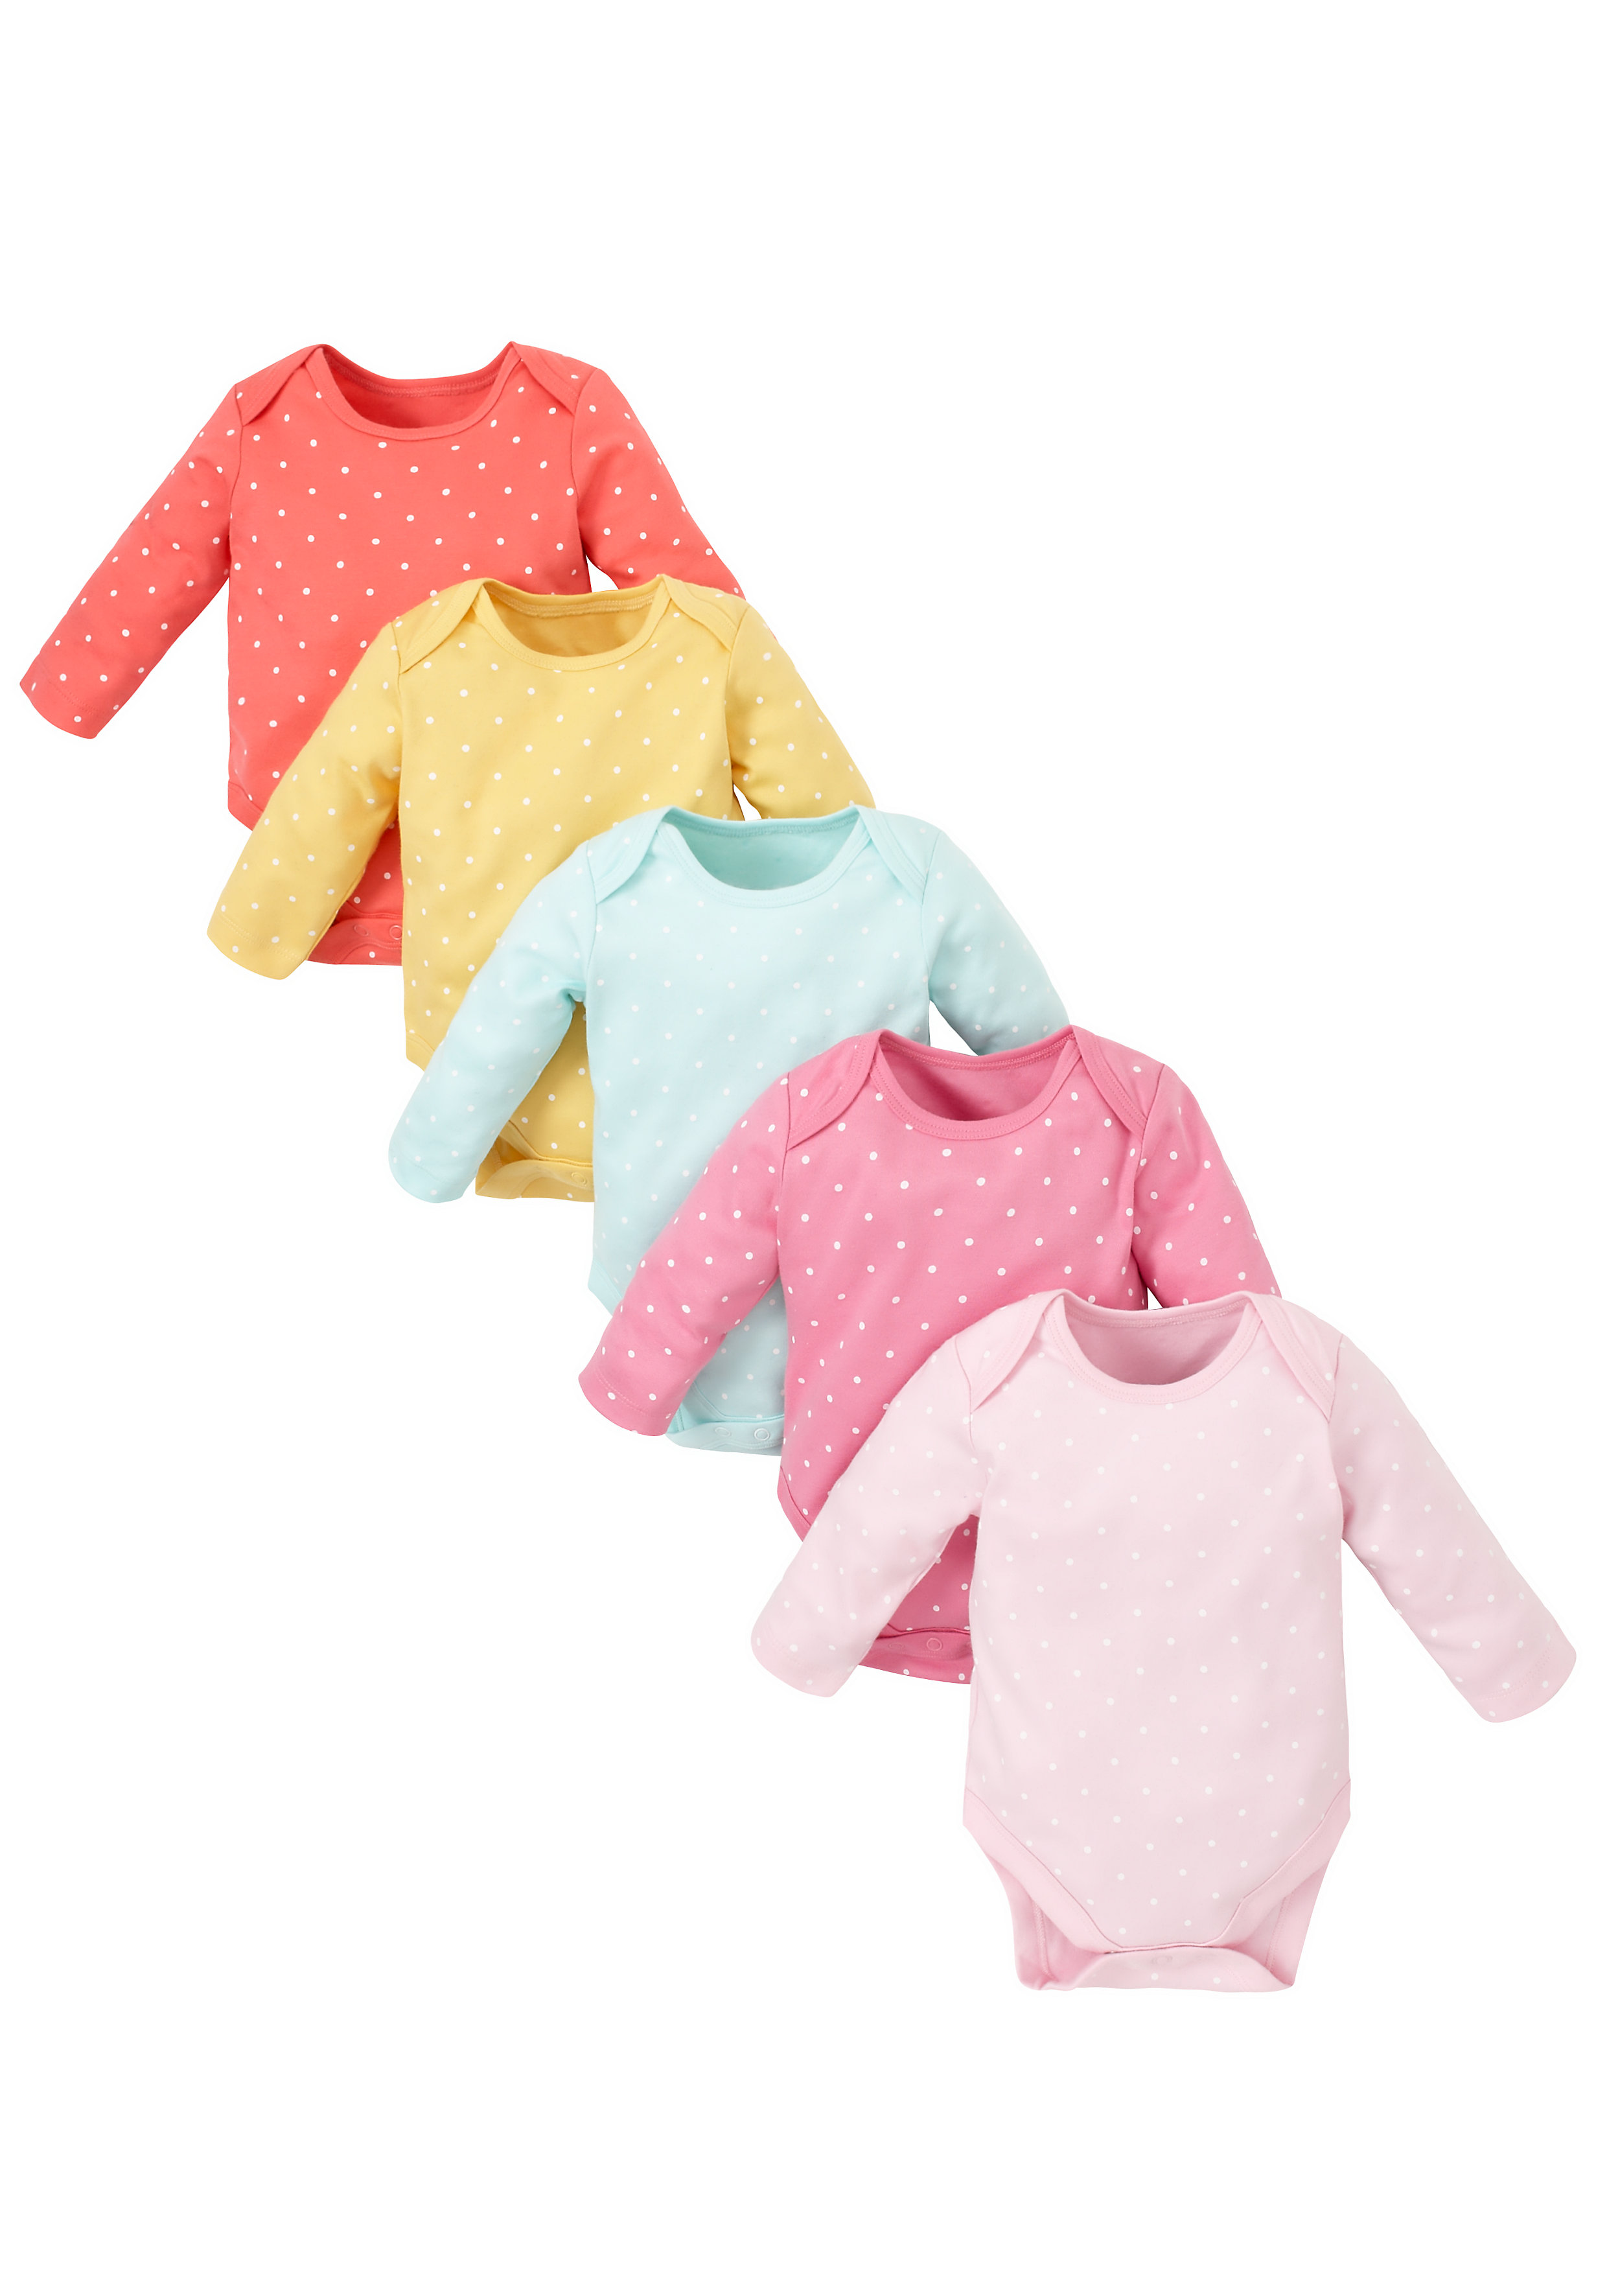 Mothercare | Girls Spotty Bodysuits - Pack Of 5 - Multicolor